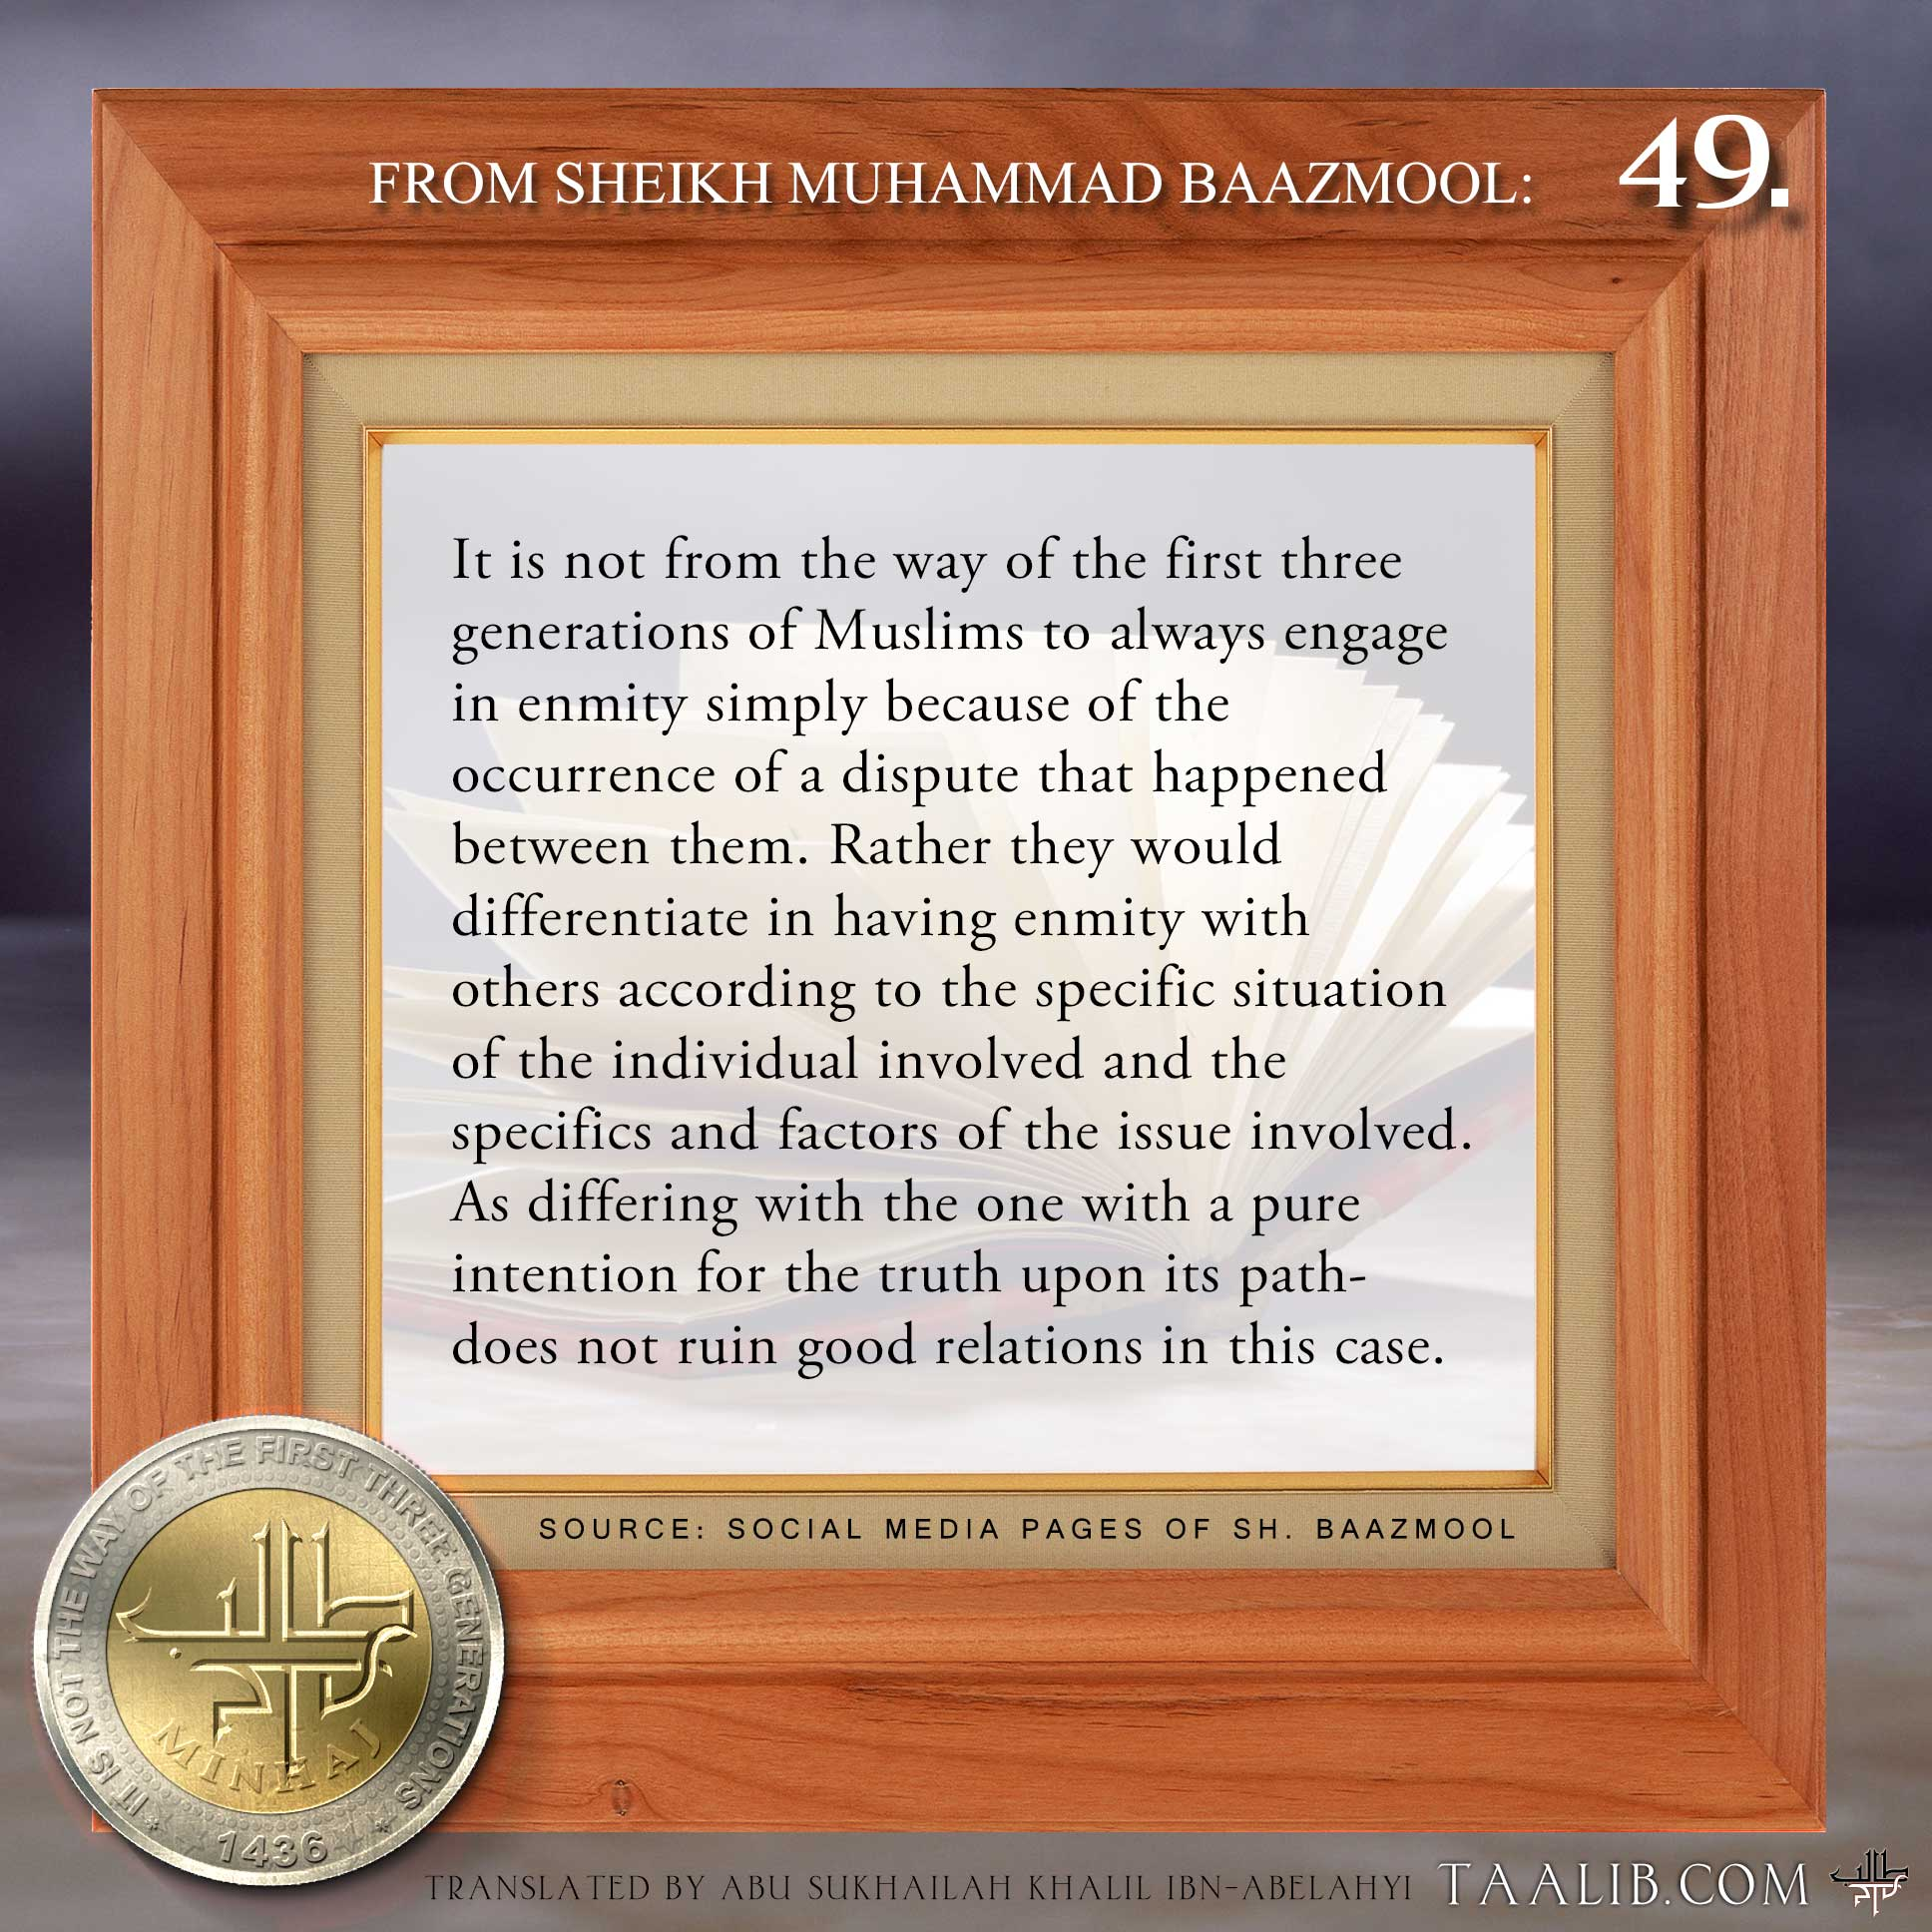 """Week 49: The guided Muslims engage in enmity due to disputes that are suitable for it and not every disagreement …. Series """"It is not from the way"""""""